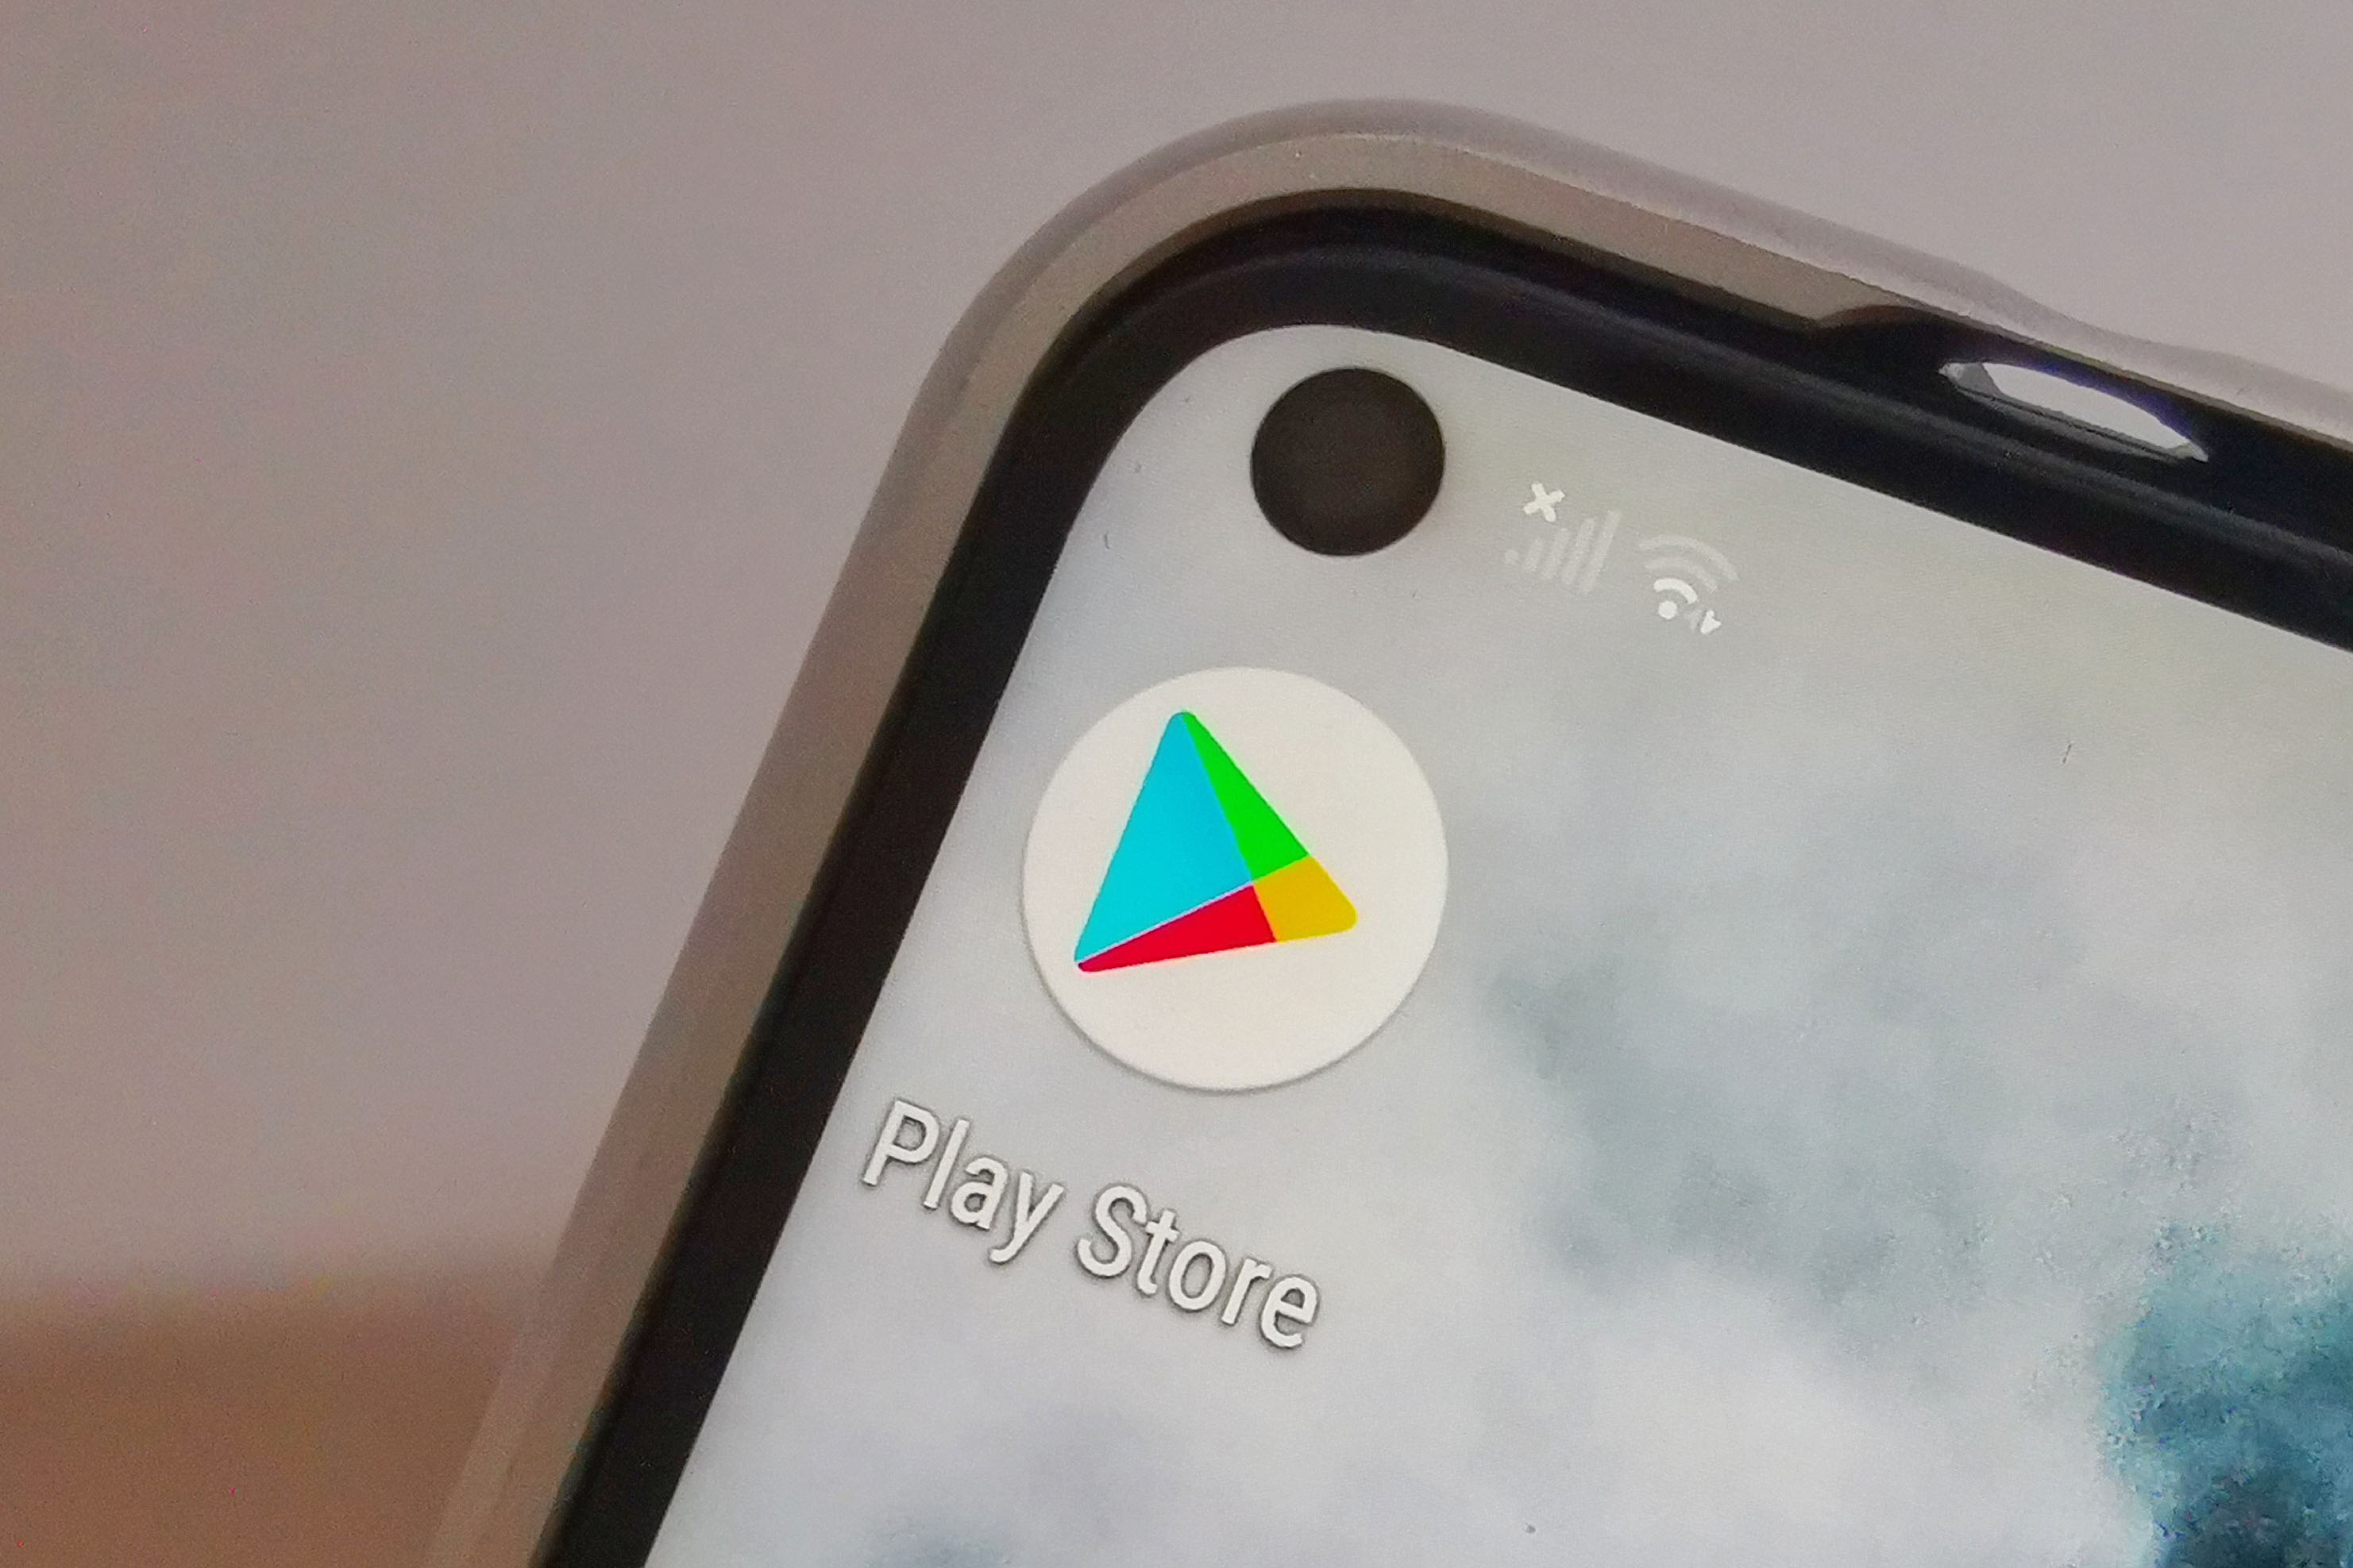 Google has announced changes to the way it handles the unique device identifiers that allows marketers to track users on Android. — Picture via SoyaCincau